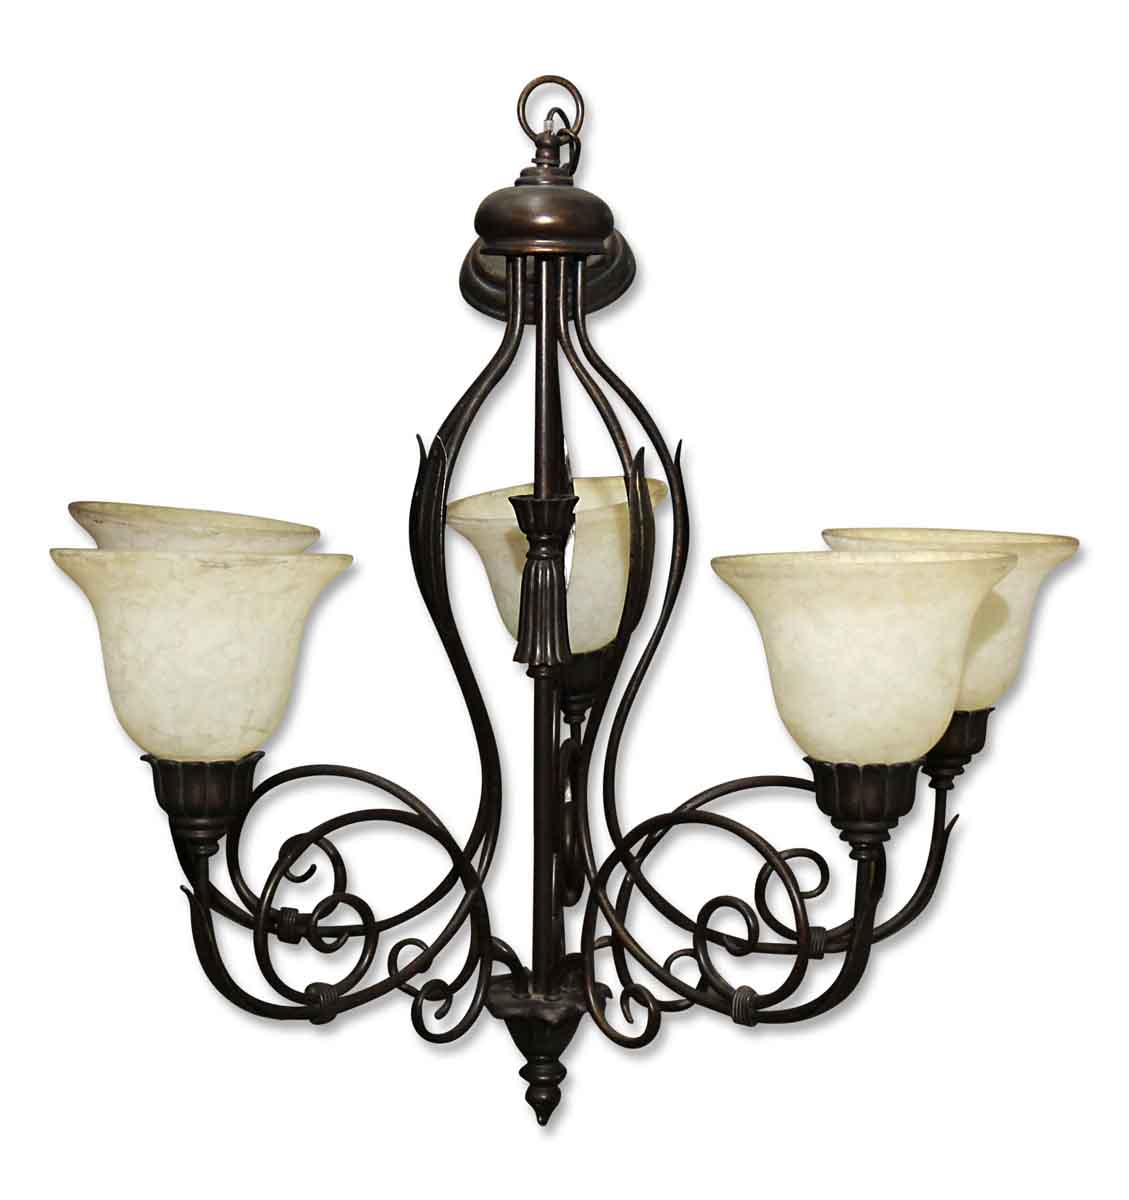 Five Light Vintage Wrought Iron Chandelier with Glass ...